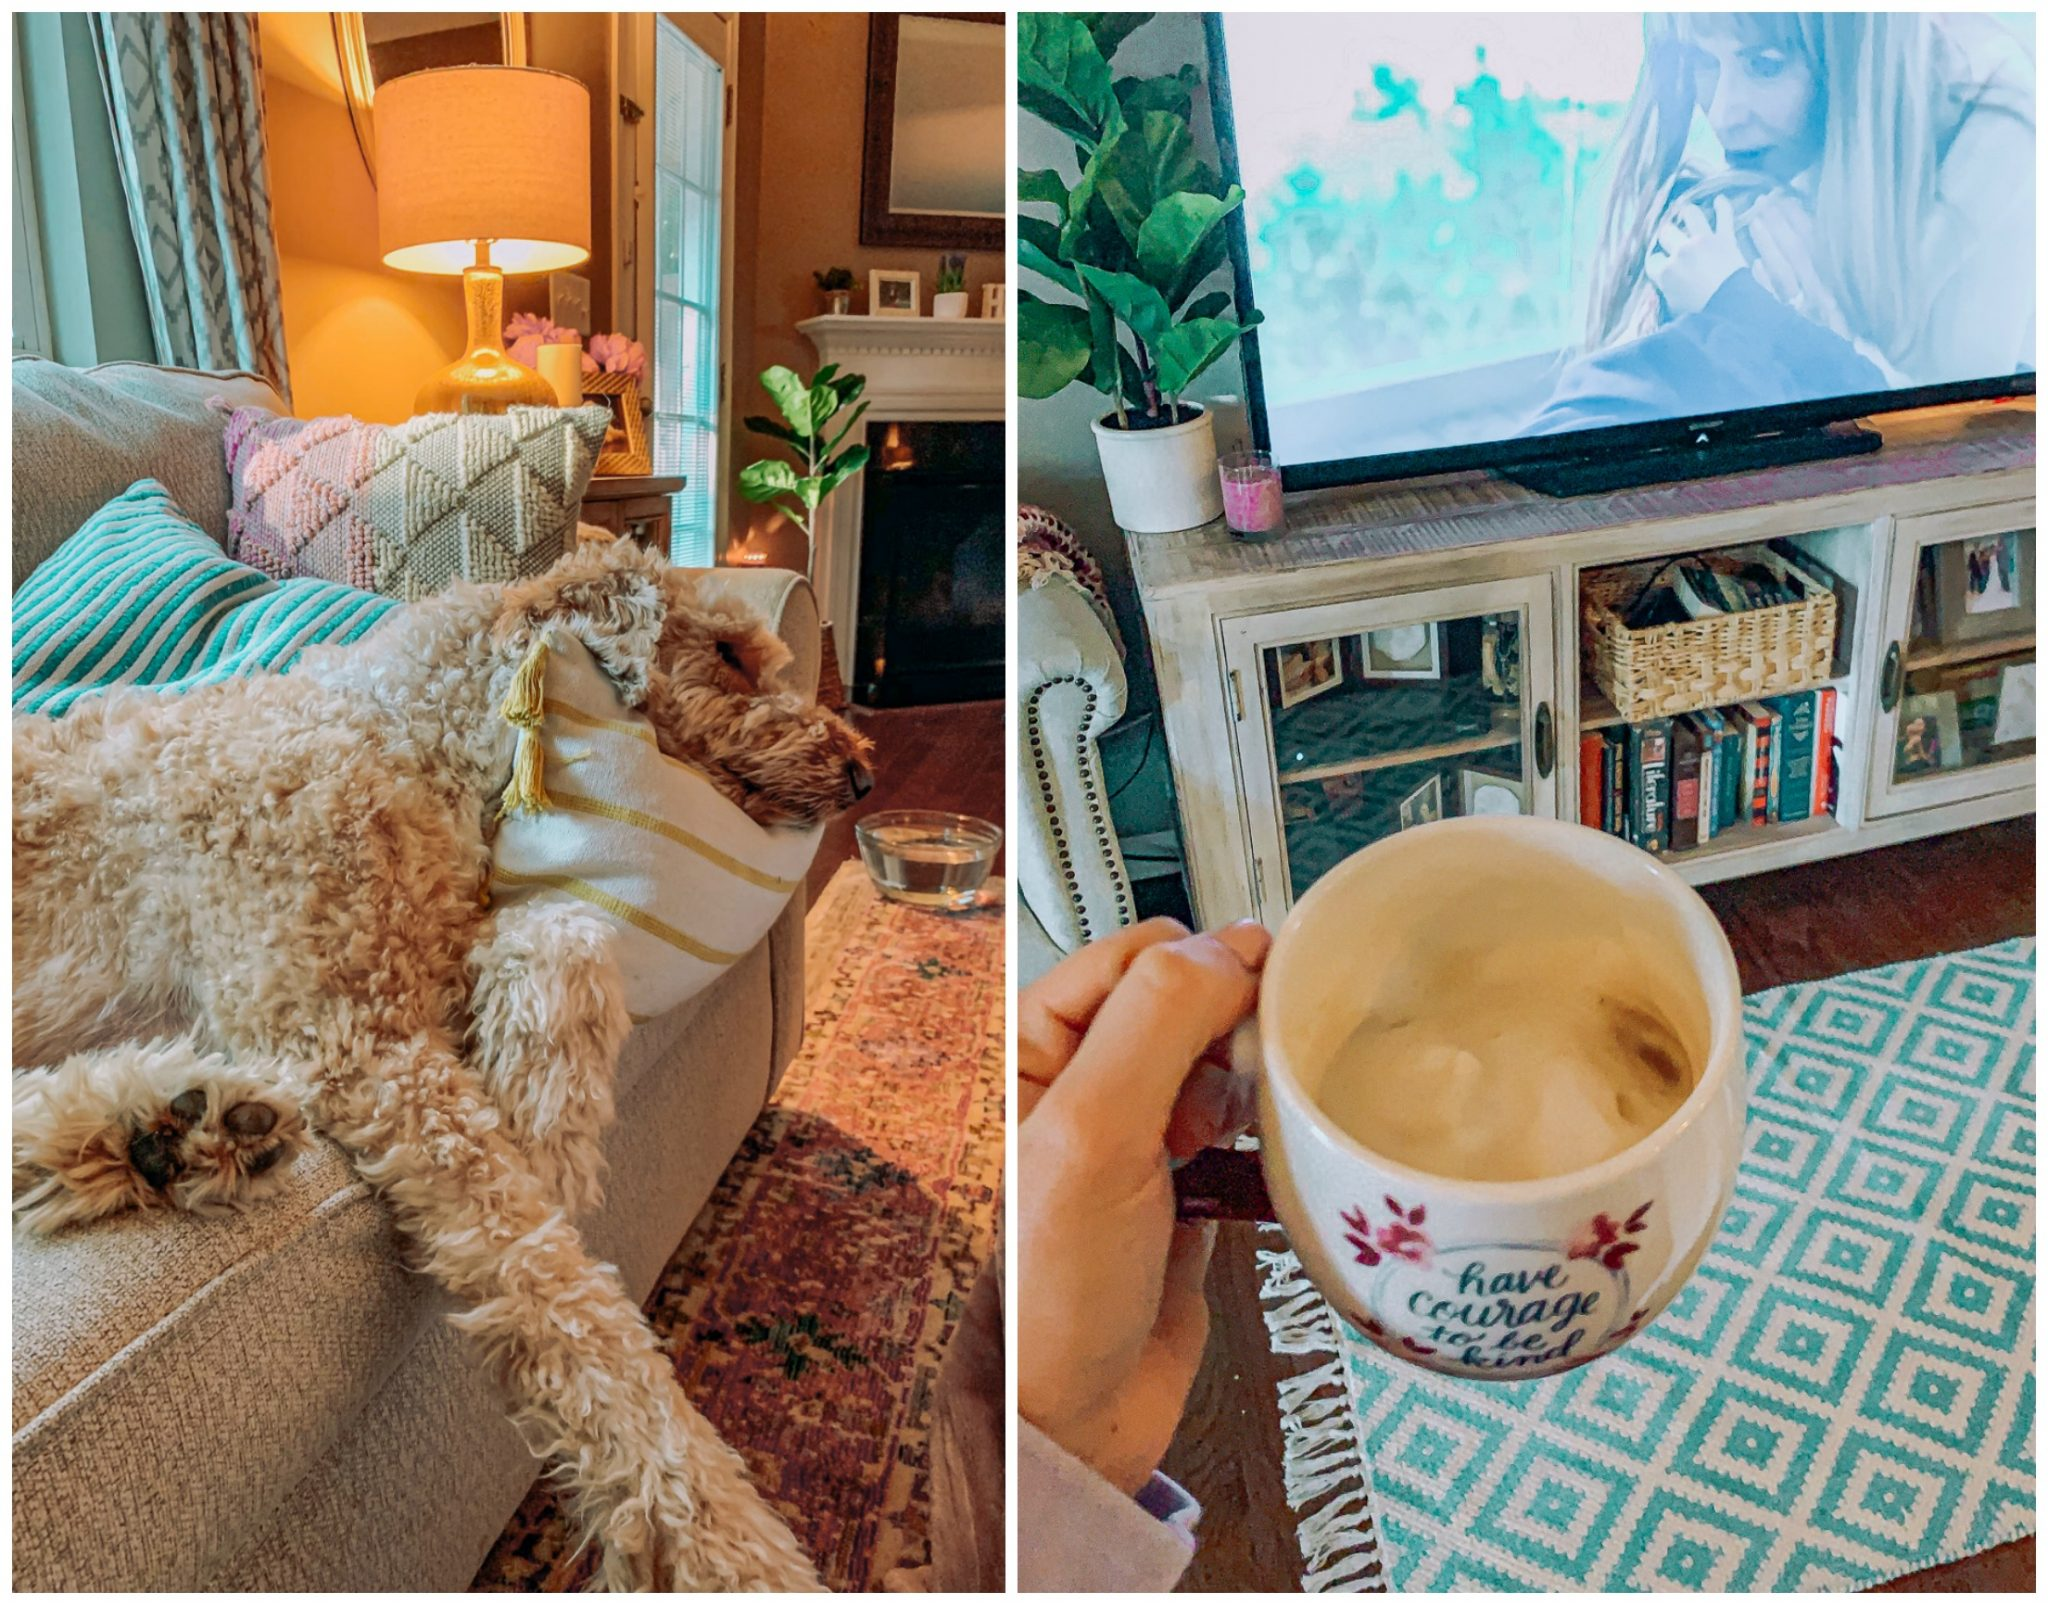 coffee, dogs, home decor, lifestyle blogging, blog, pups, carpet, rugs, home goods